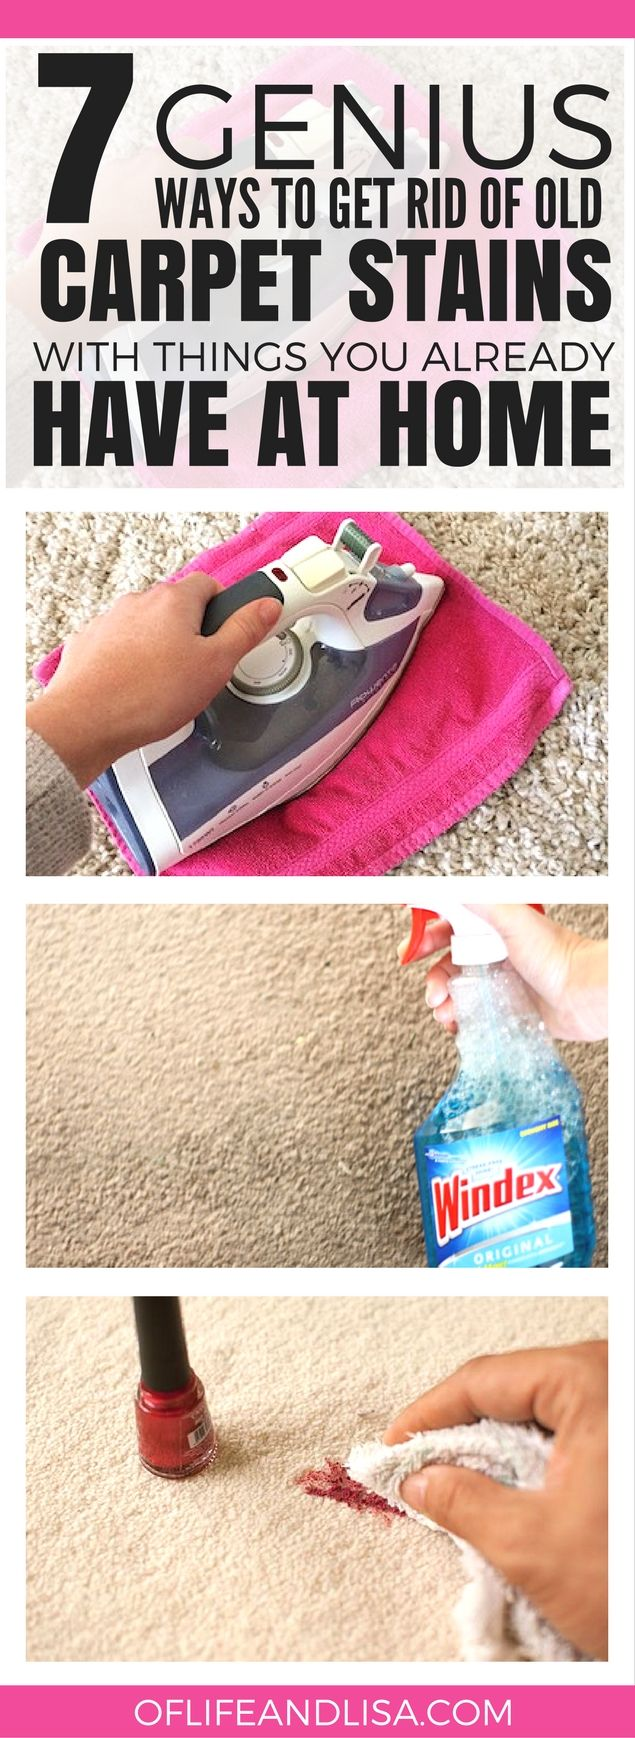 102 Best How To Images On Pinterest Cleaning Hacks Cleaning  # Muebles Batista Chihuahua